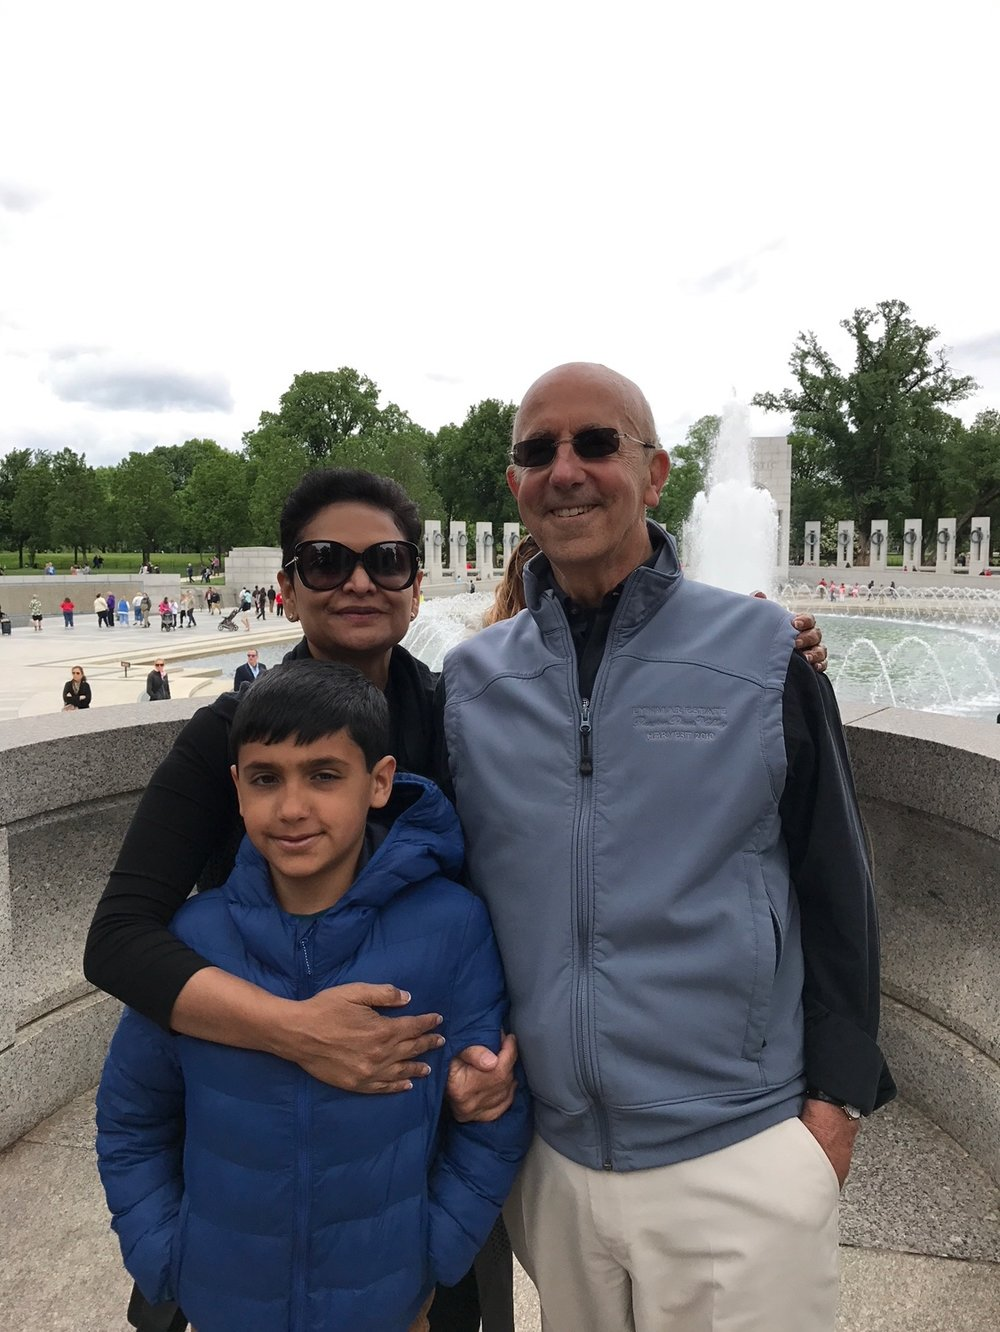 Leslie's Dad Lynn with his wife Anisya and their son Adam